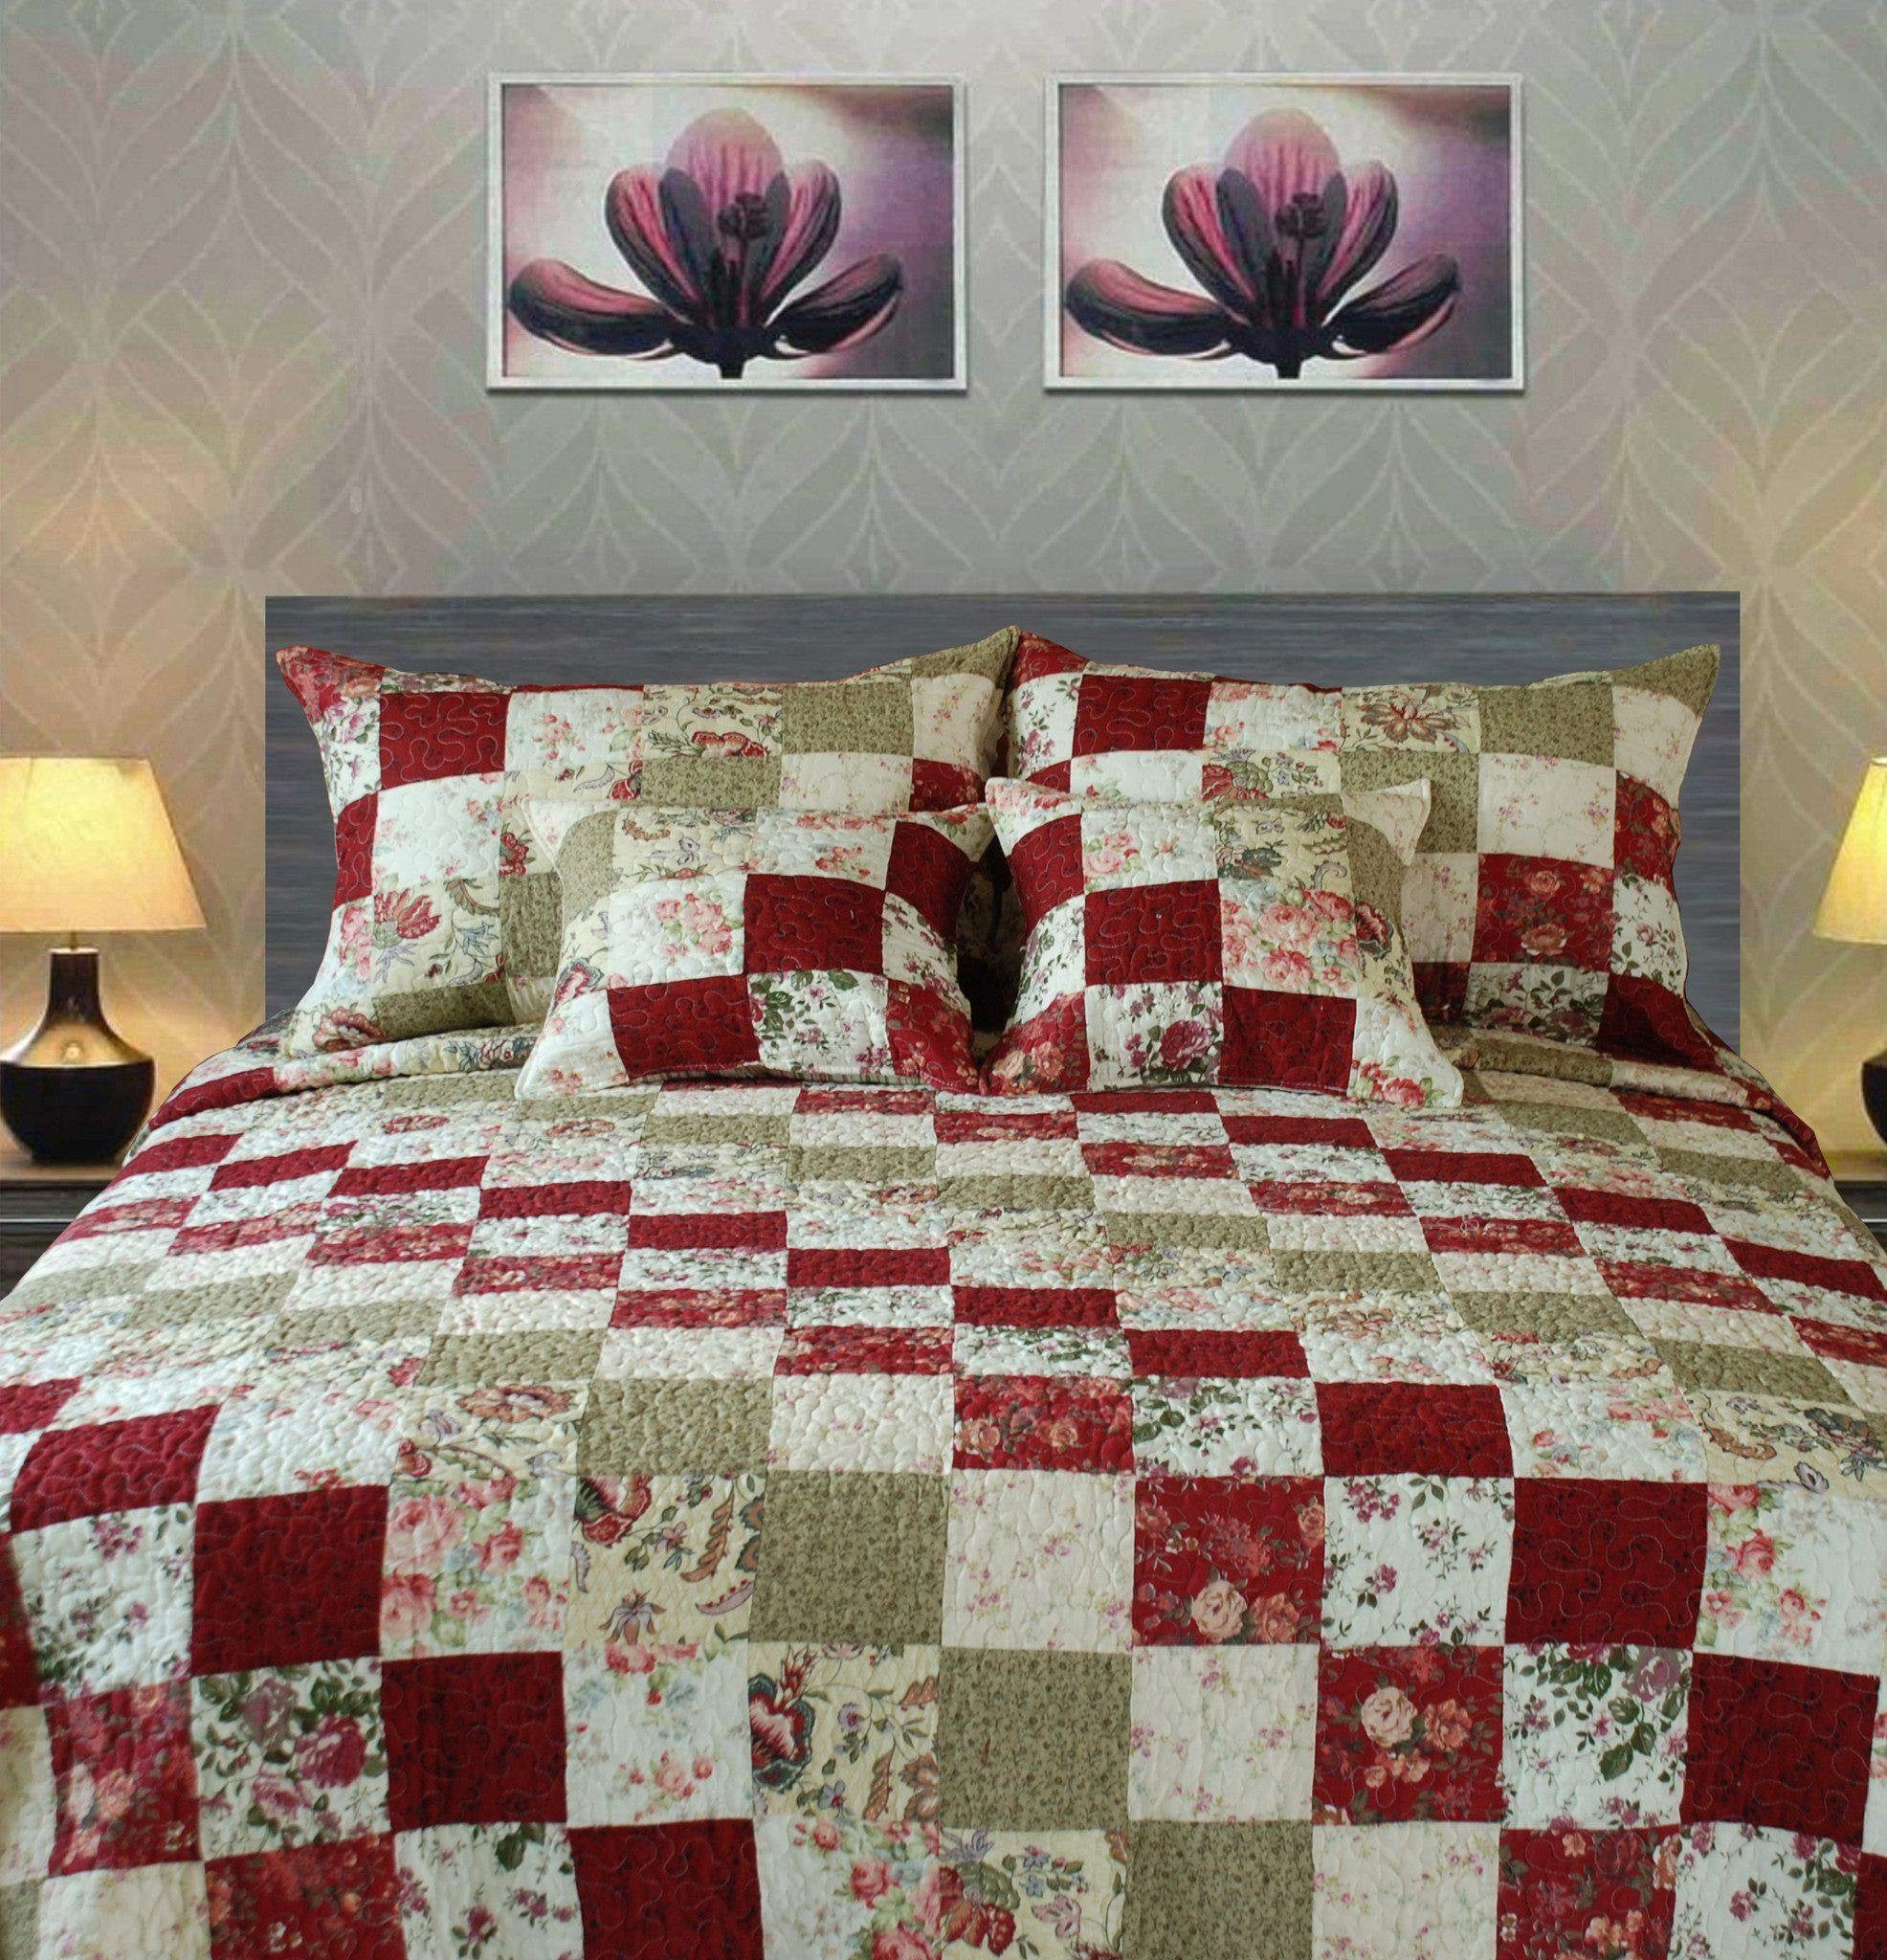 Tache 3-5 Piece Cotton Red Country Cottage Patchwork Quilt Set ... : patchwork quilt set - Adamdwight.com